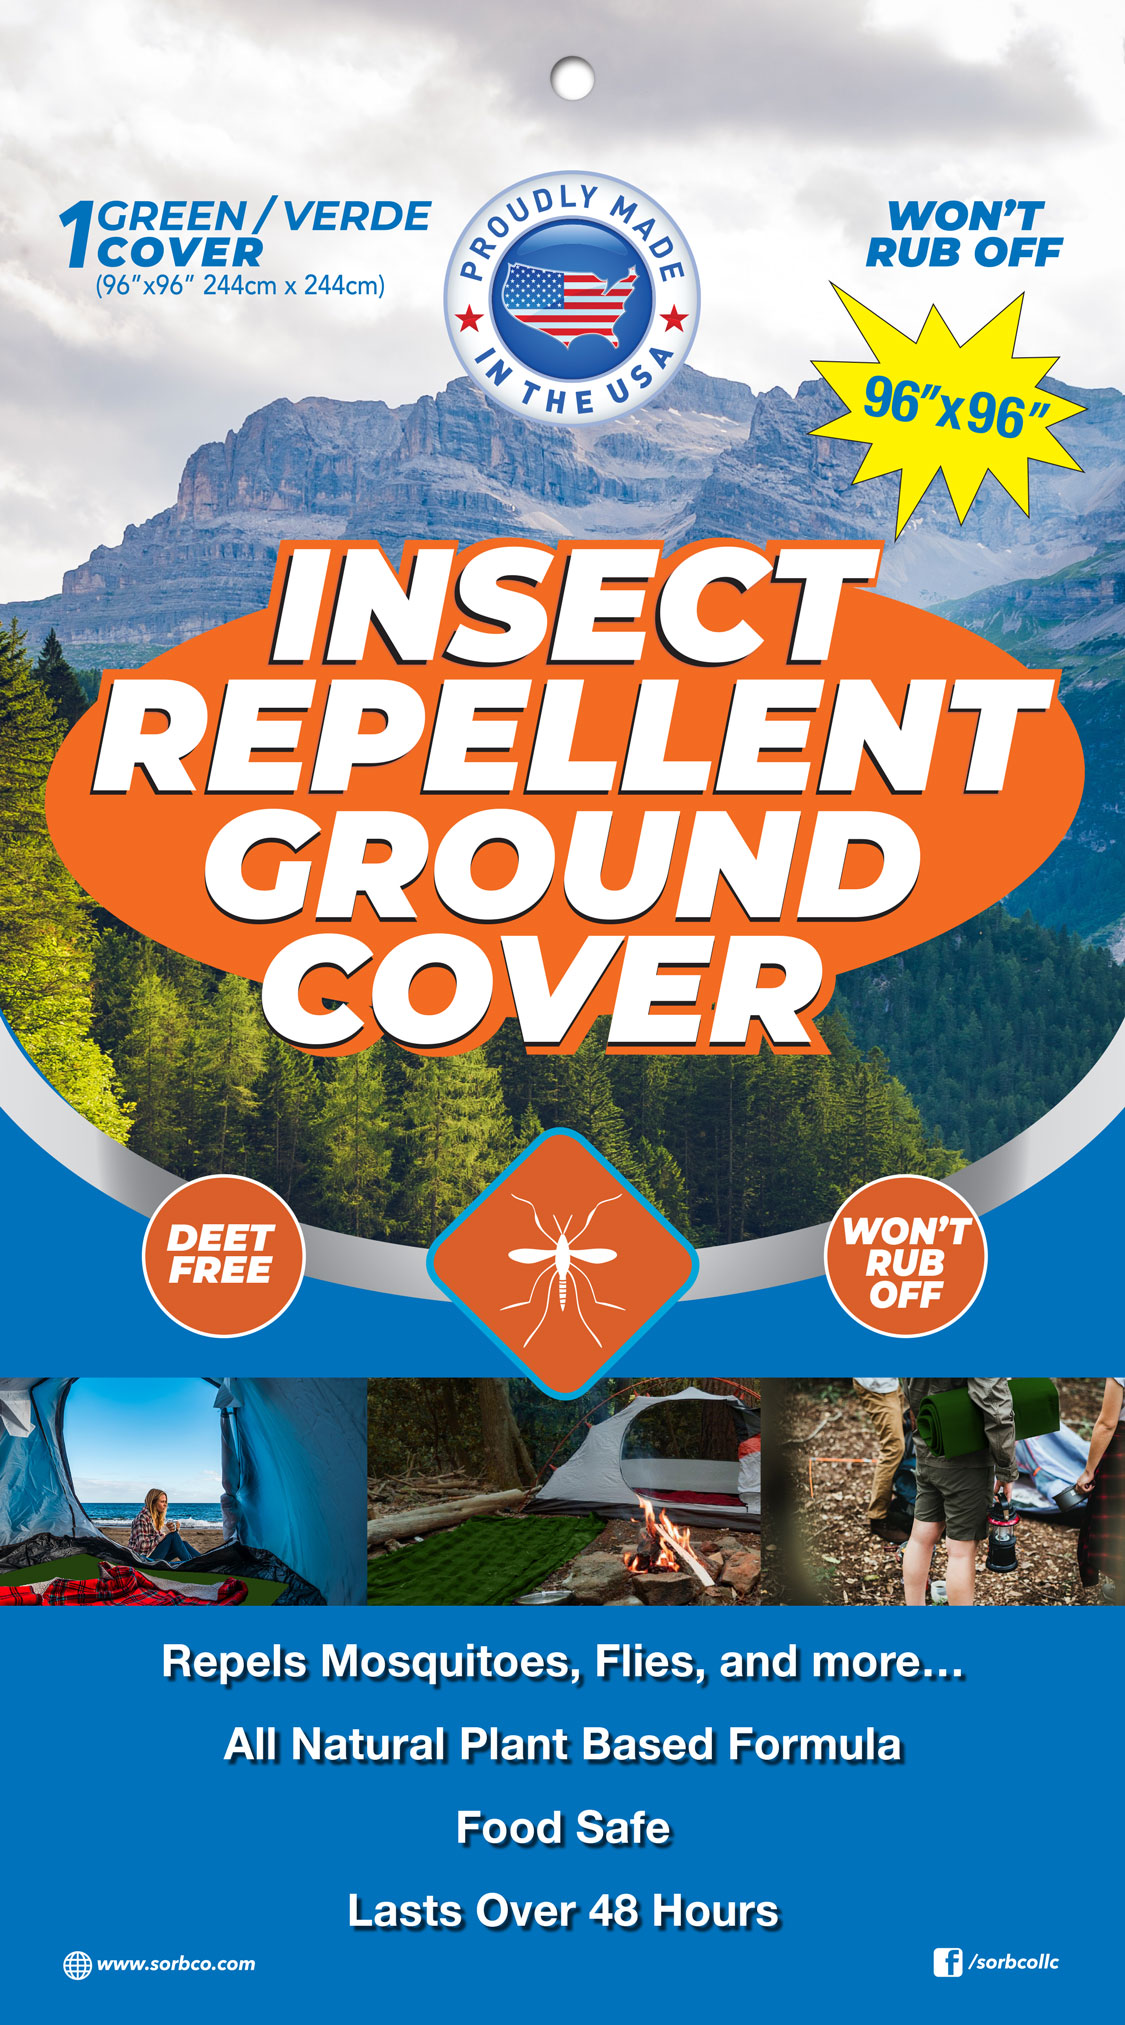 Insect Repellent Ground Cover Sorbco